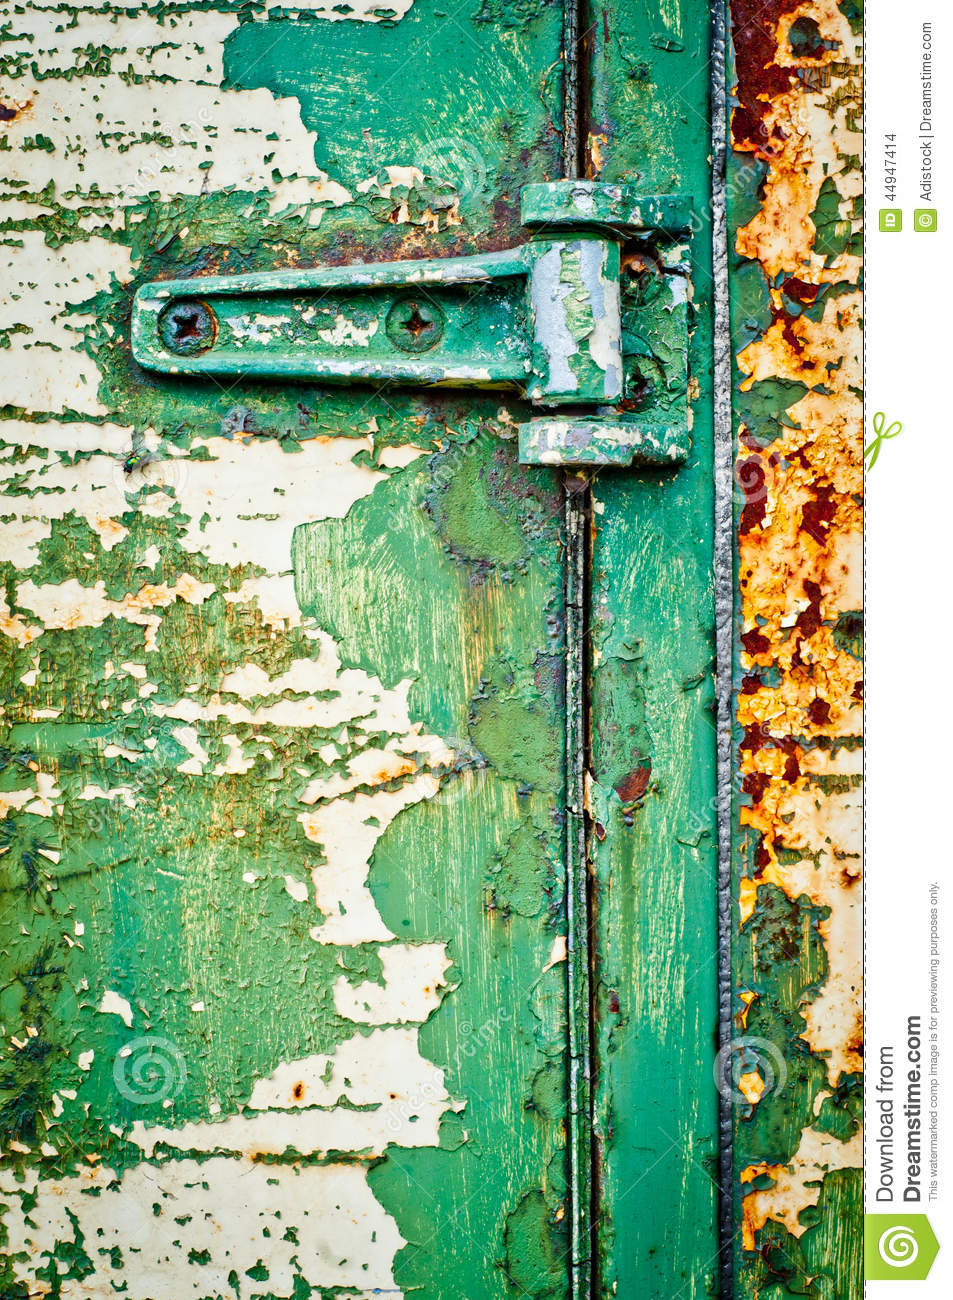 White wood texture ancient wood surface background pattern royalty - The Old Door With Cracked Paint Background Closed With